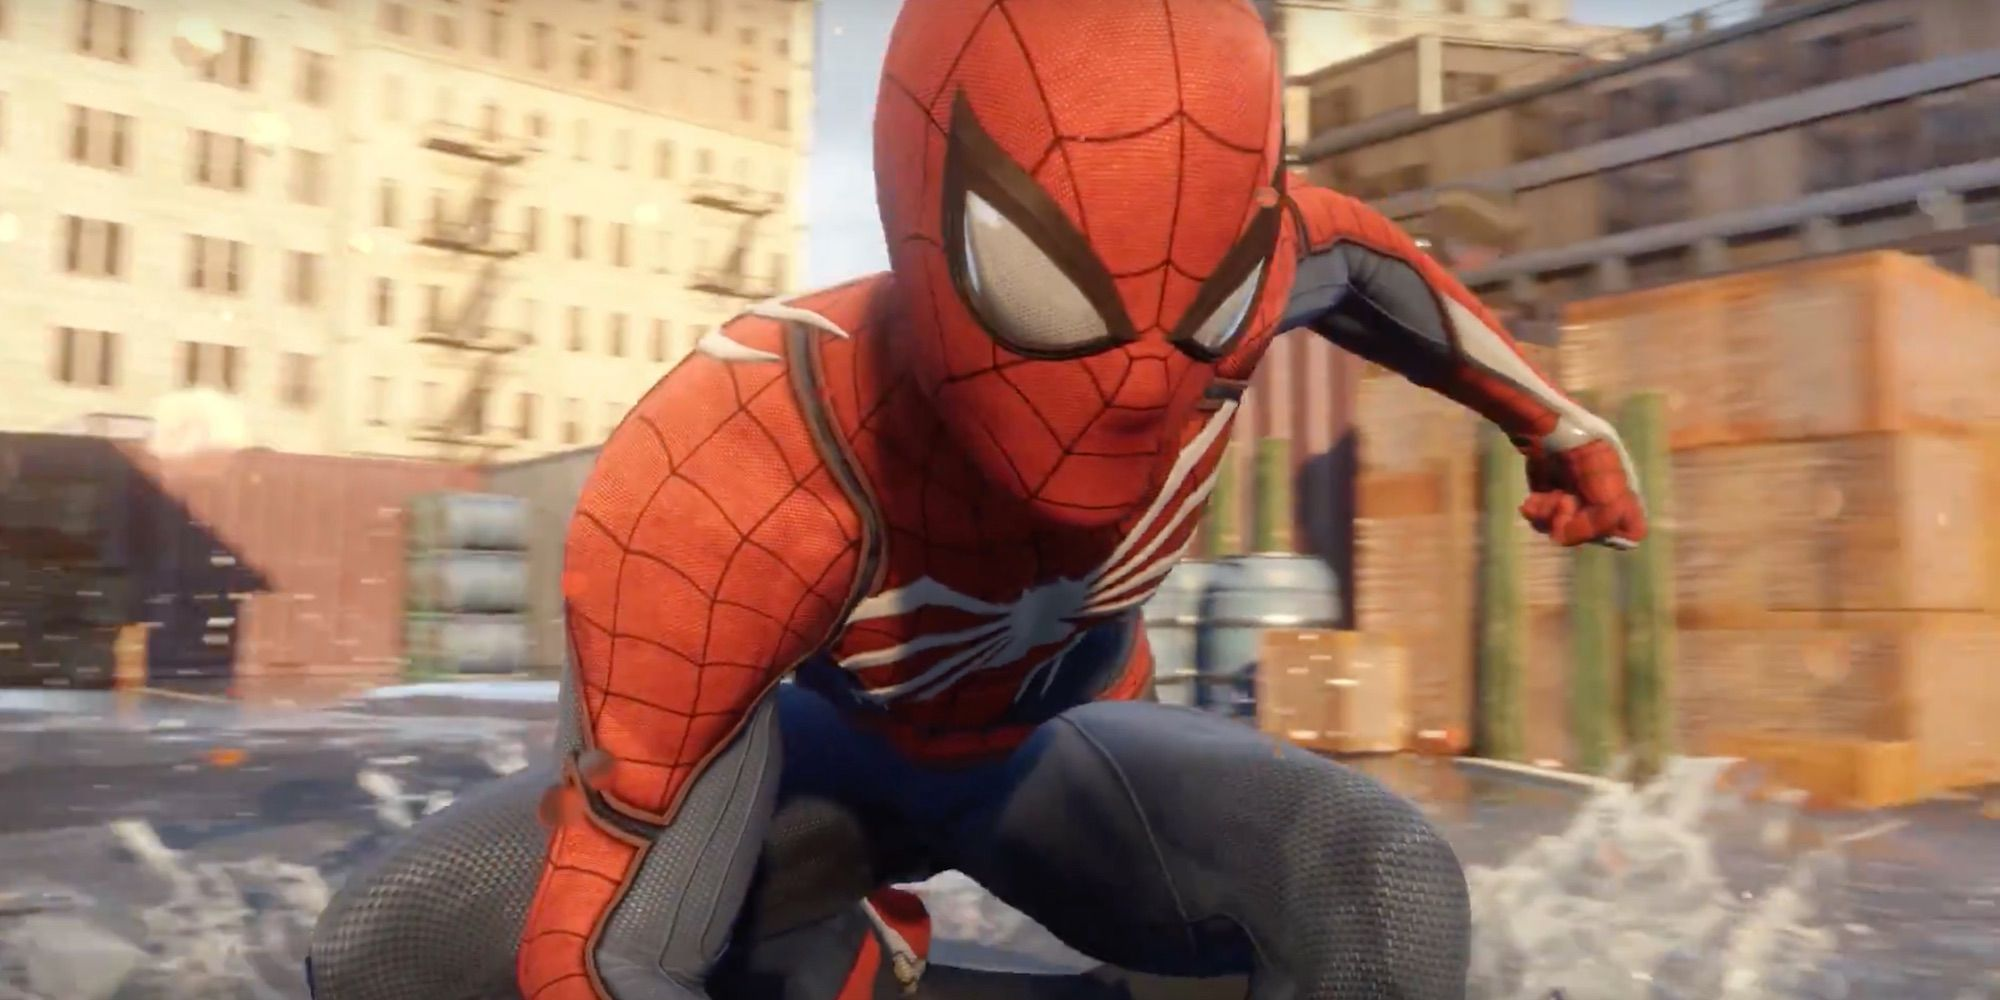 Games That Come With The Ps4 : Spider man ps game trailer peter parker meets insomniac